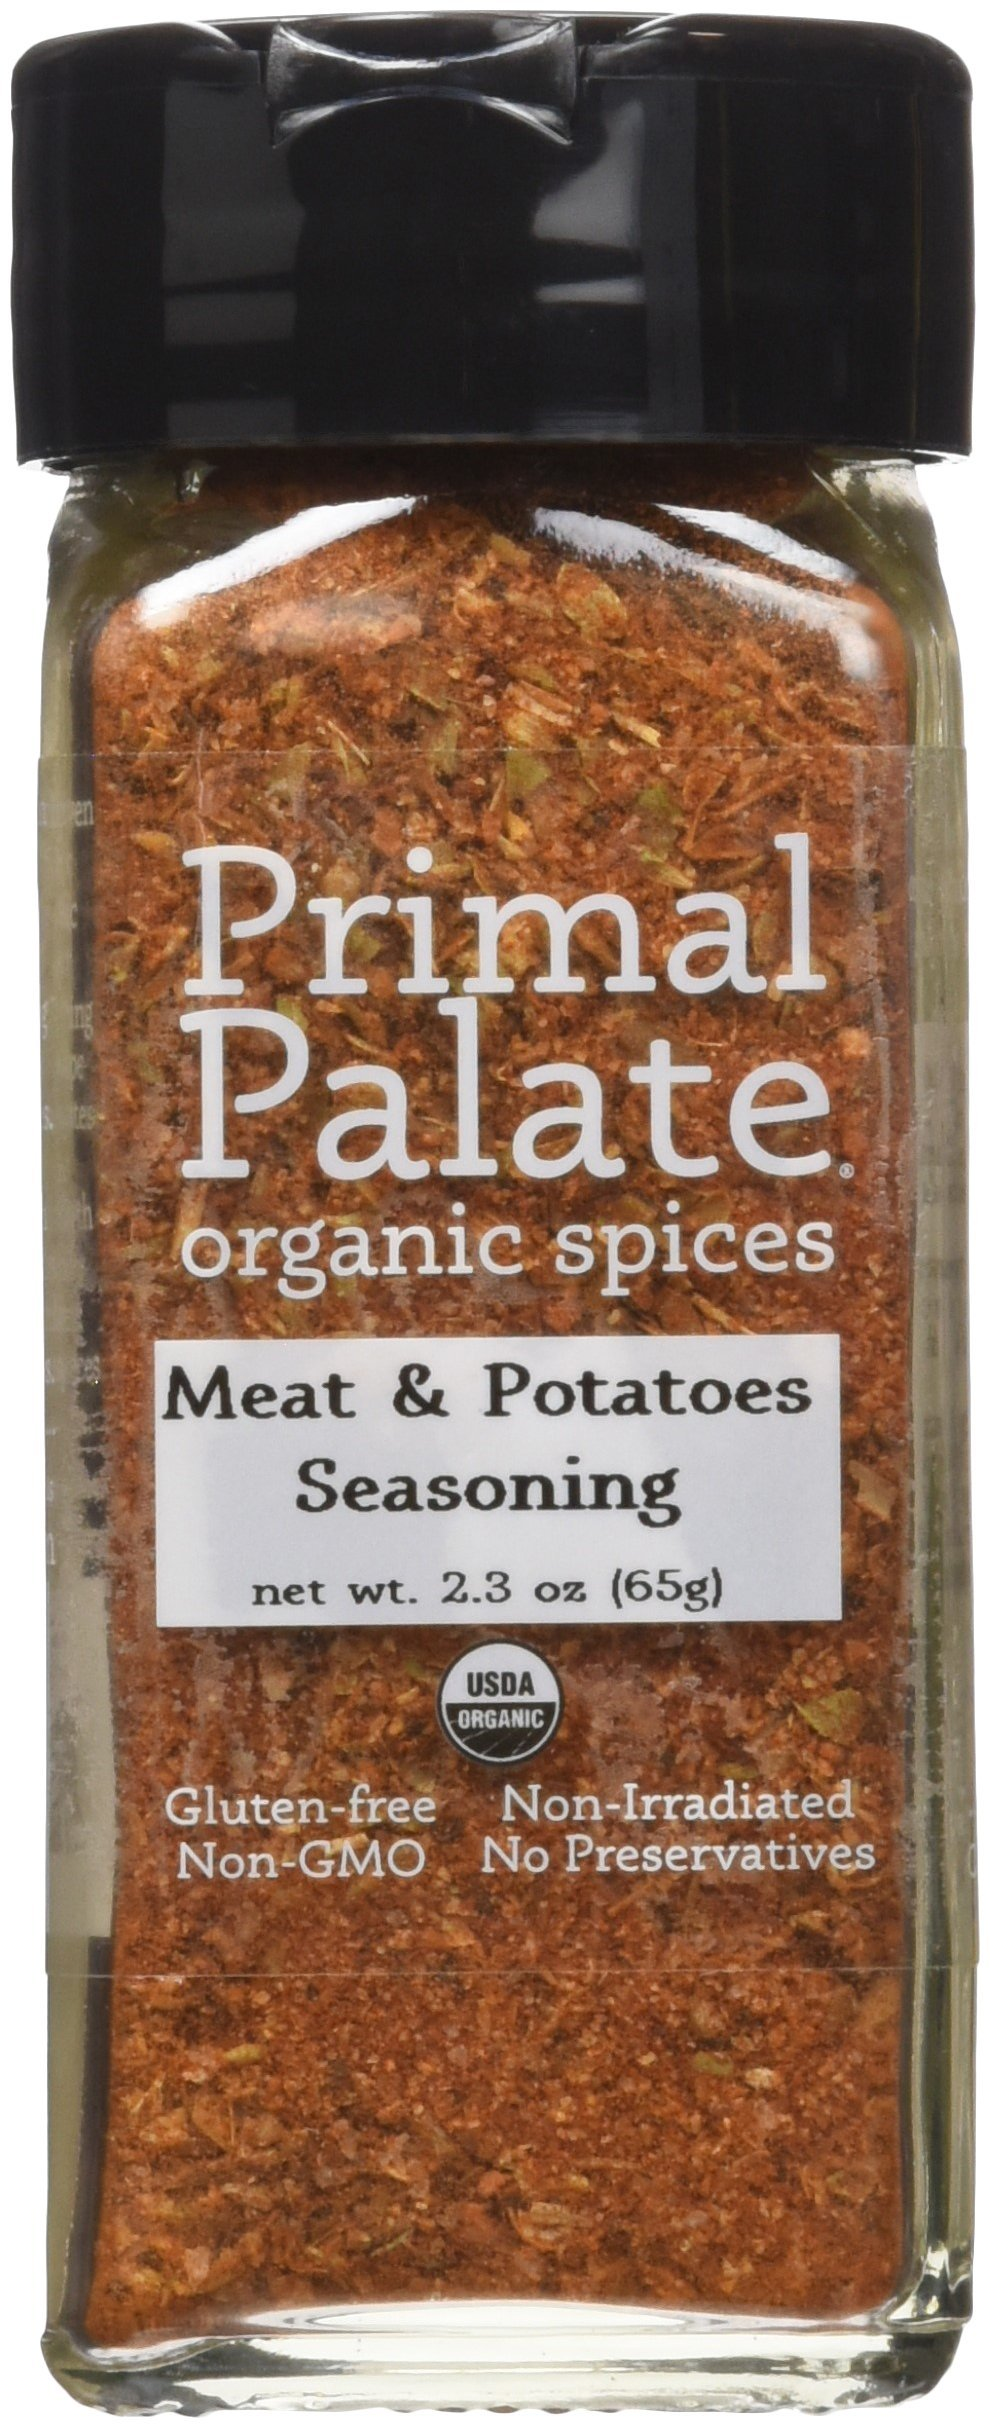 Primal Palate Organic Spices Meat & Potatoes Seasoning, Certified Organic, 2.3 oz Bottle